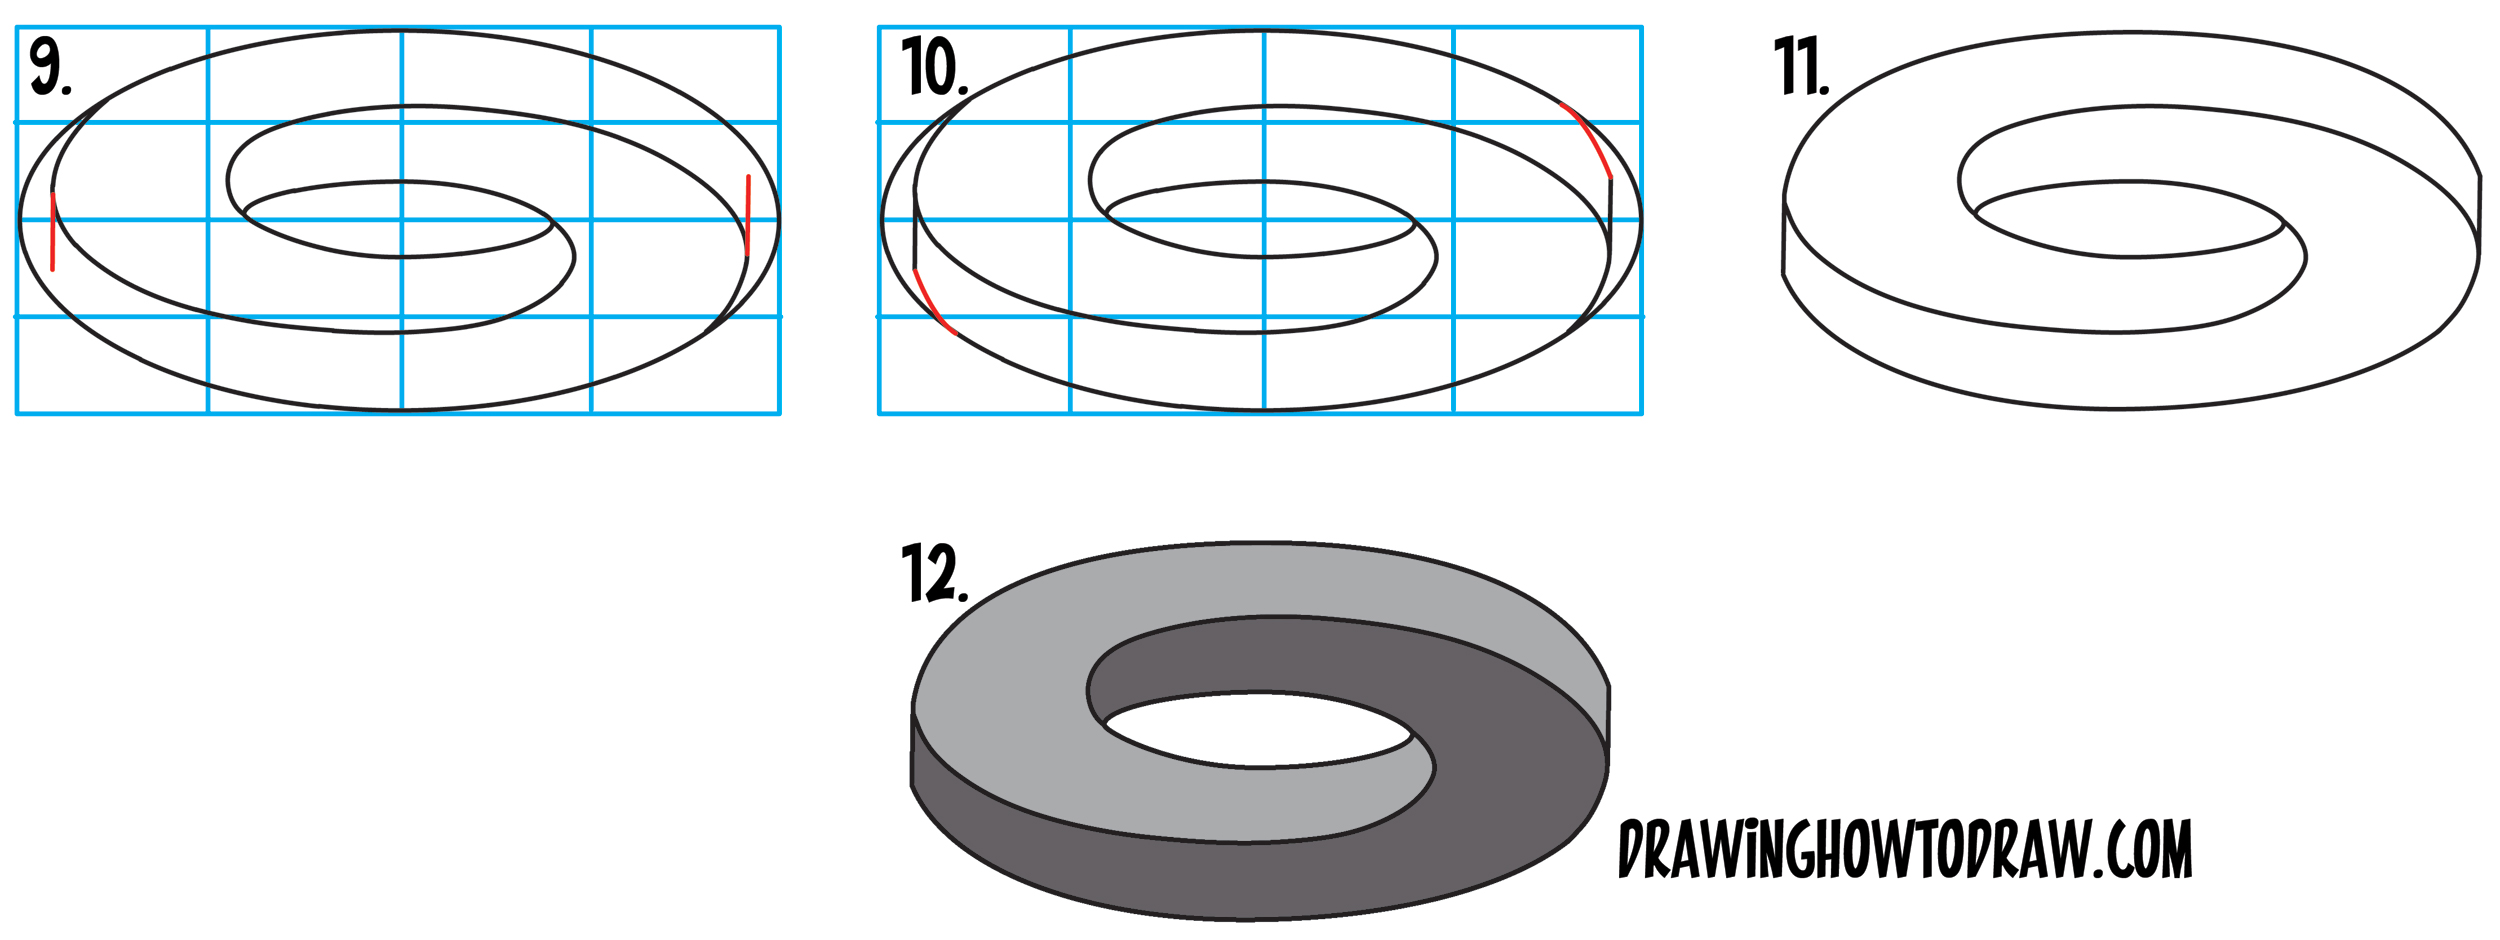 Learn How to Draw an Impossible Oval / Mobius Strip / Möbius Strips in Simple Steps Drawing Lesson for Beginners